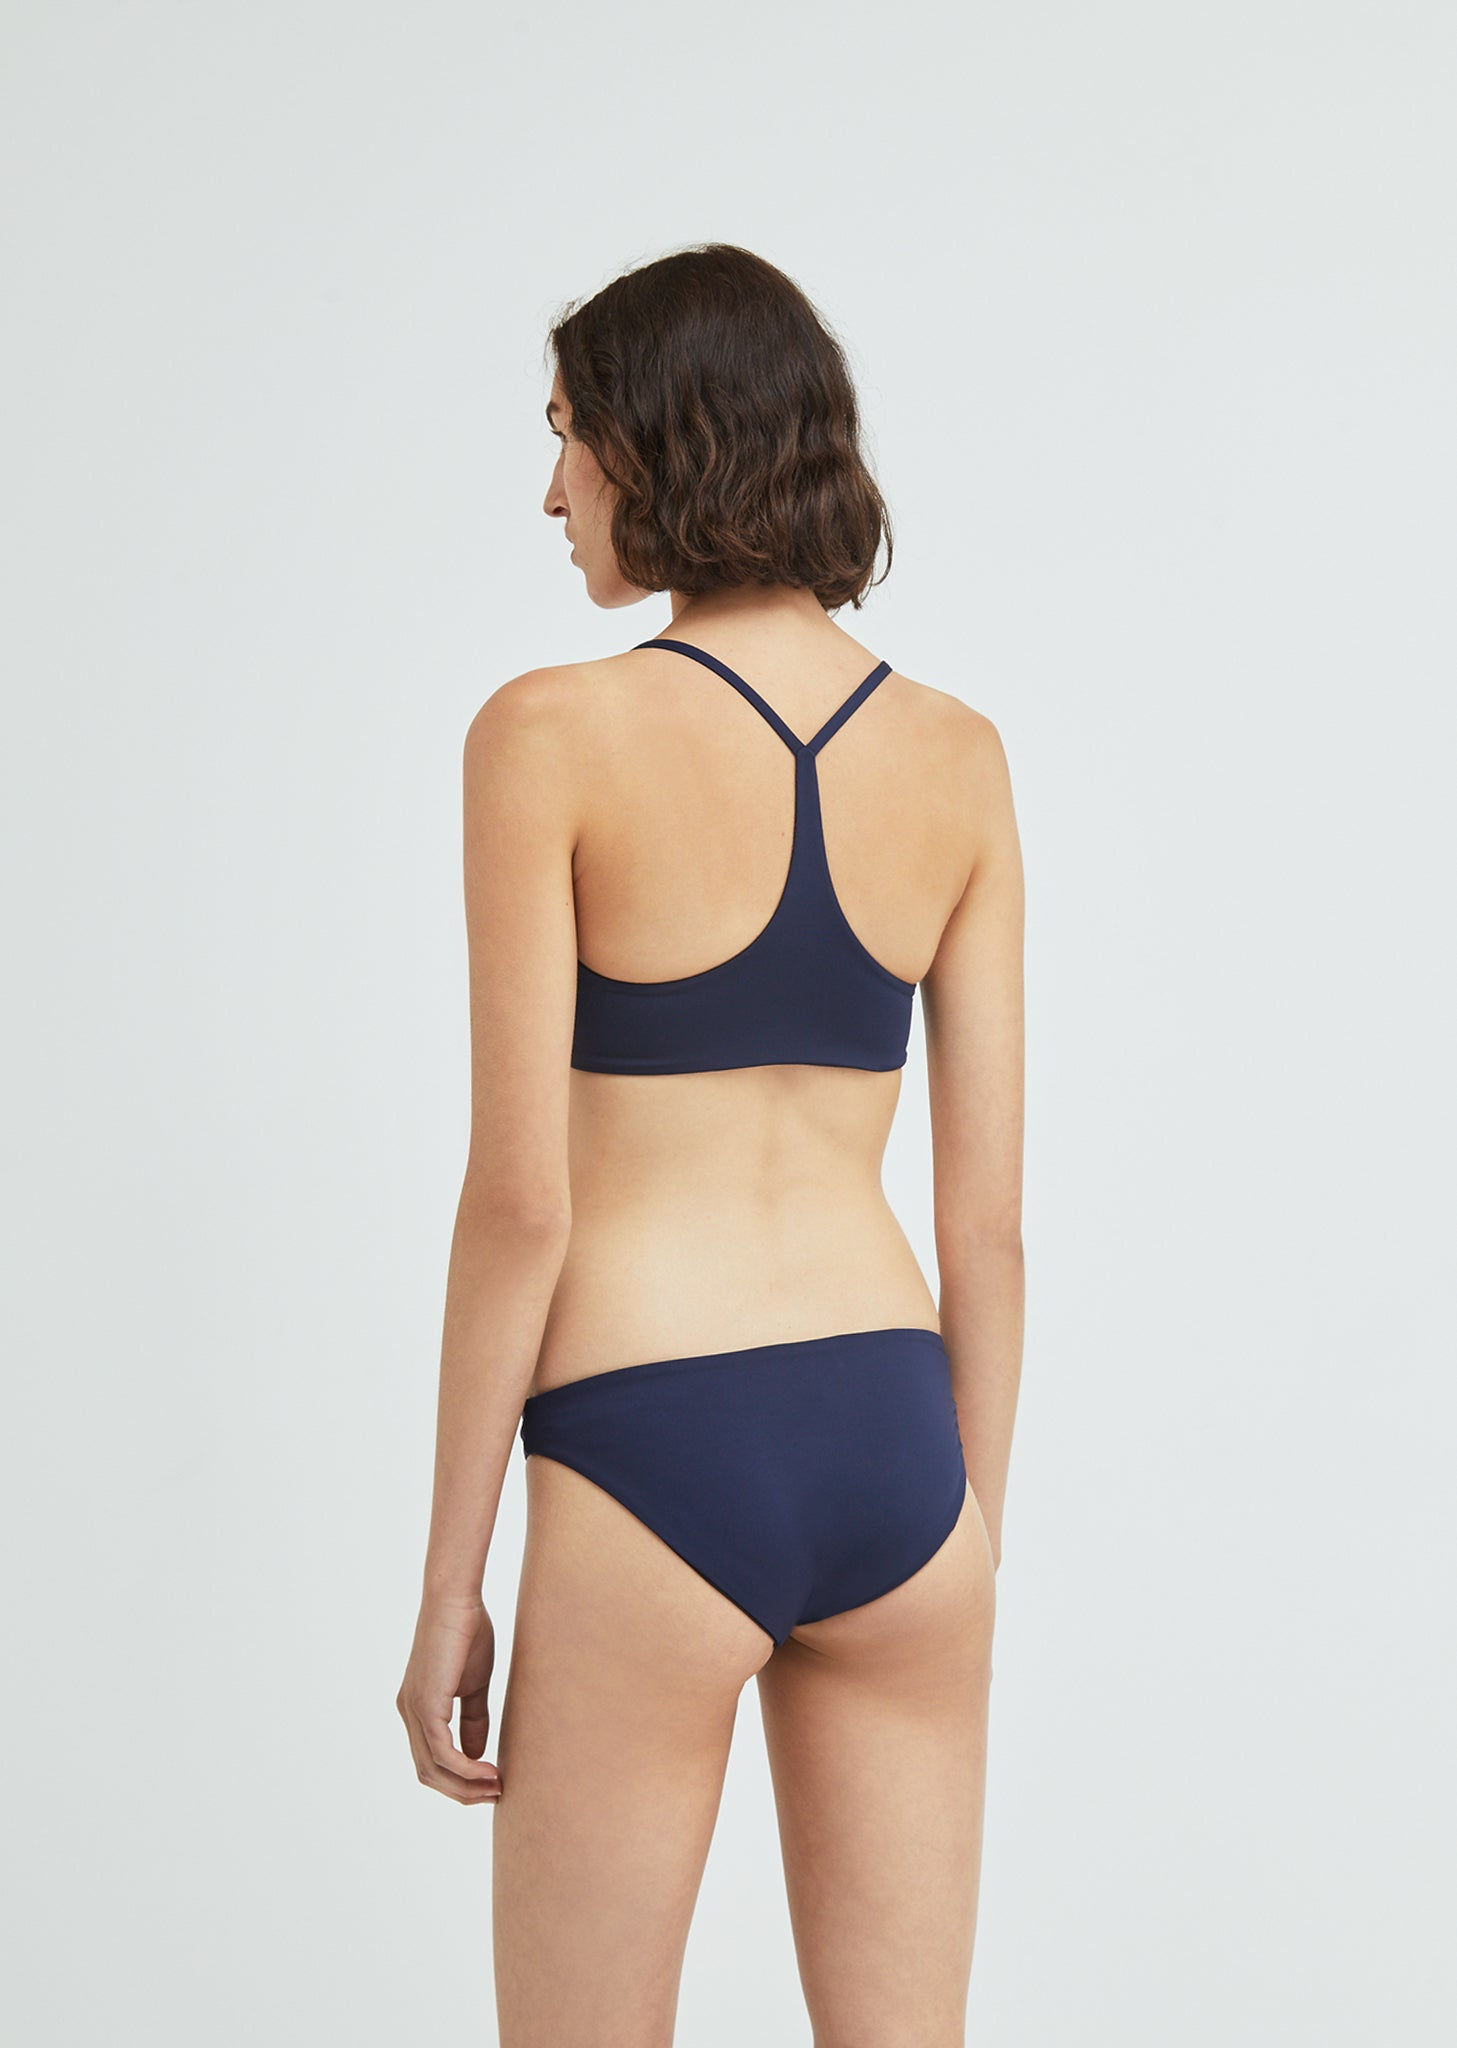 ce4914e3cf6d2 The Selby Reversible Bikini Top by Skin- La Garçonne